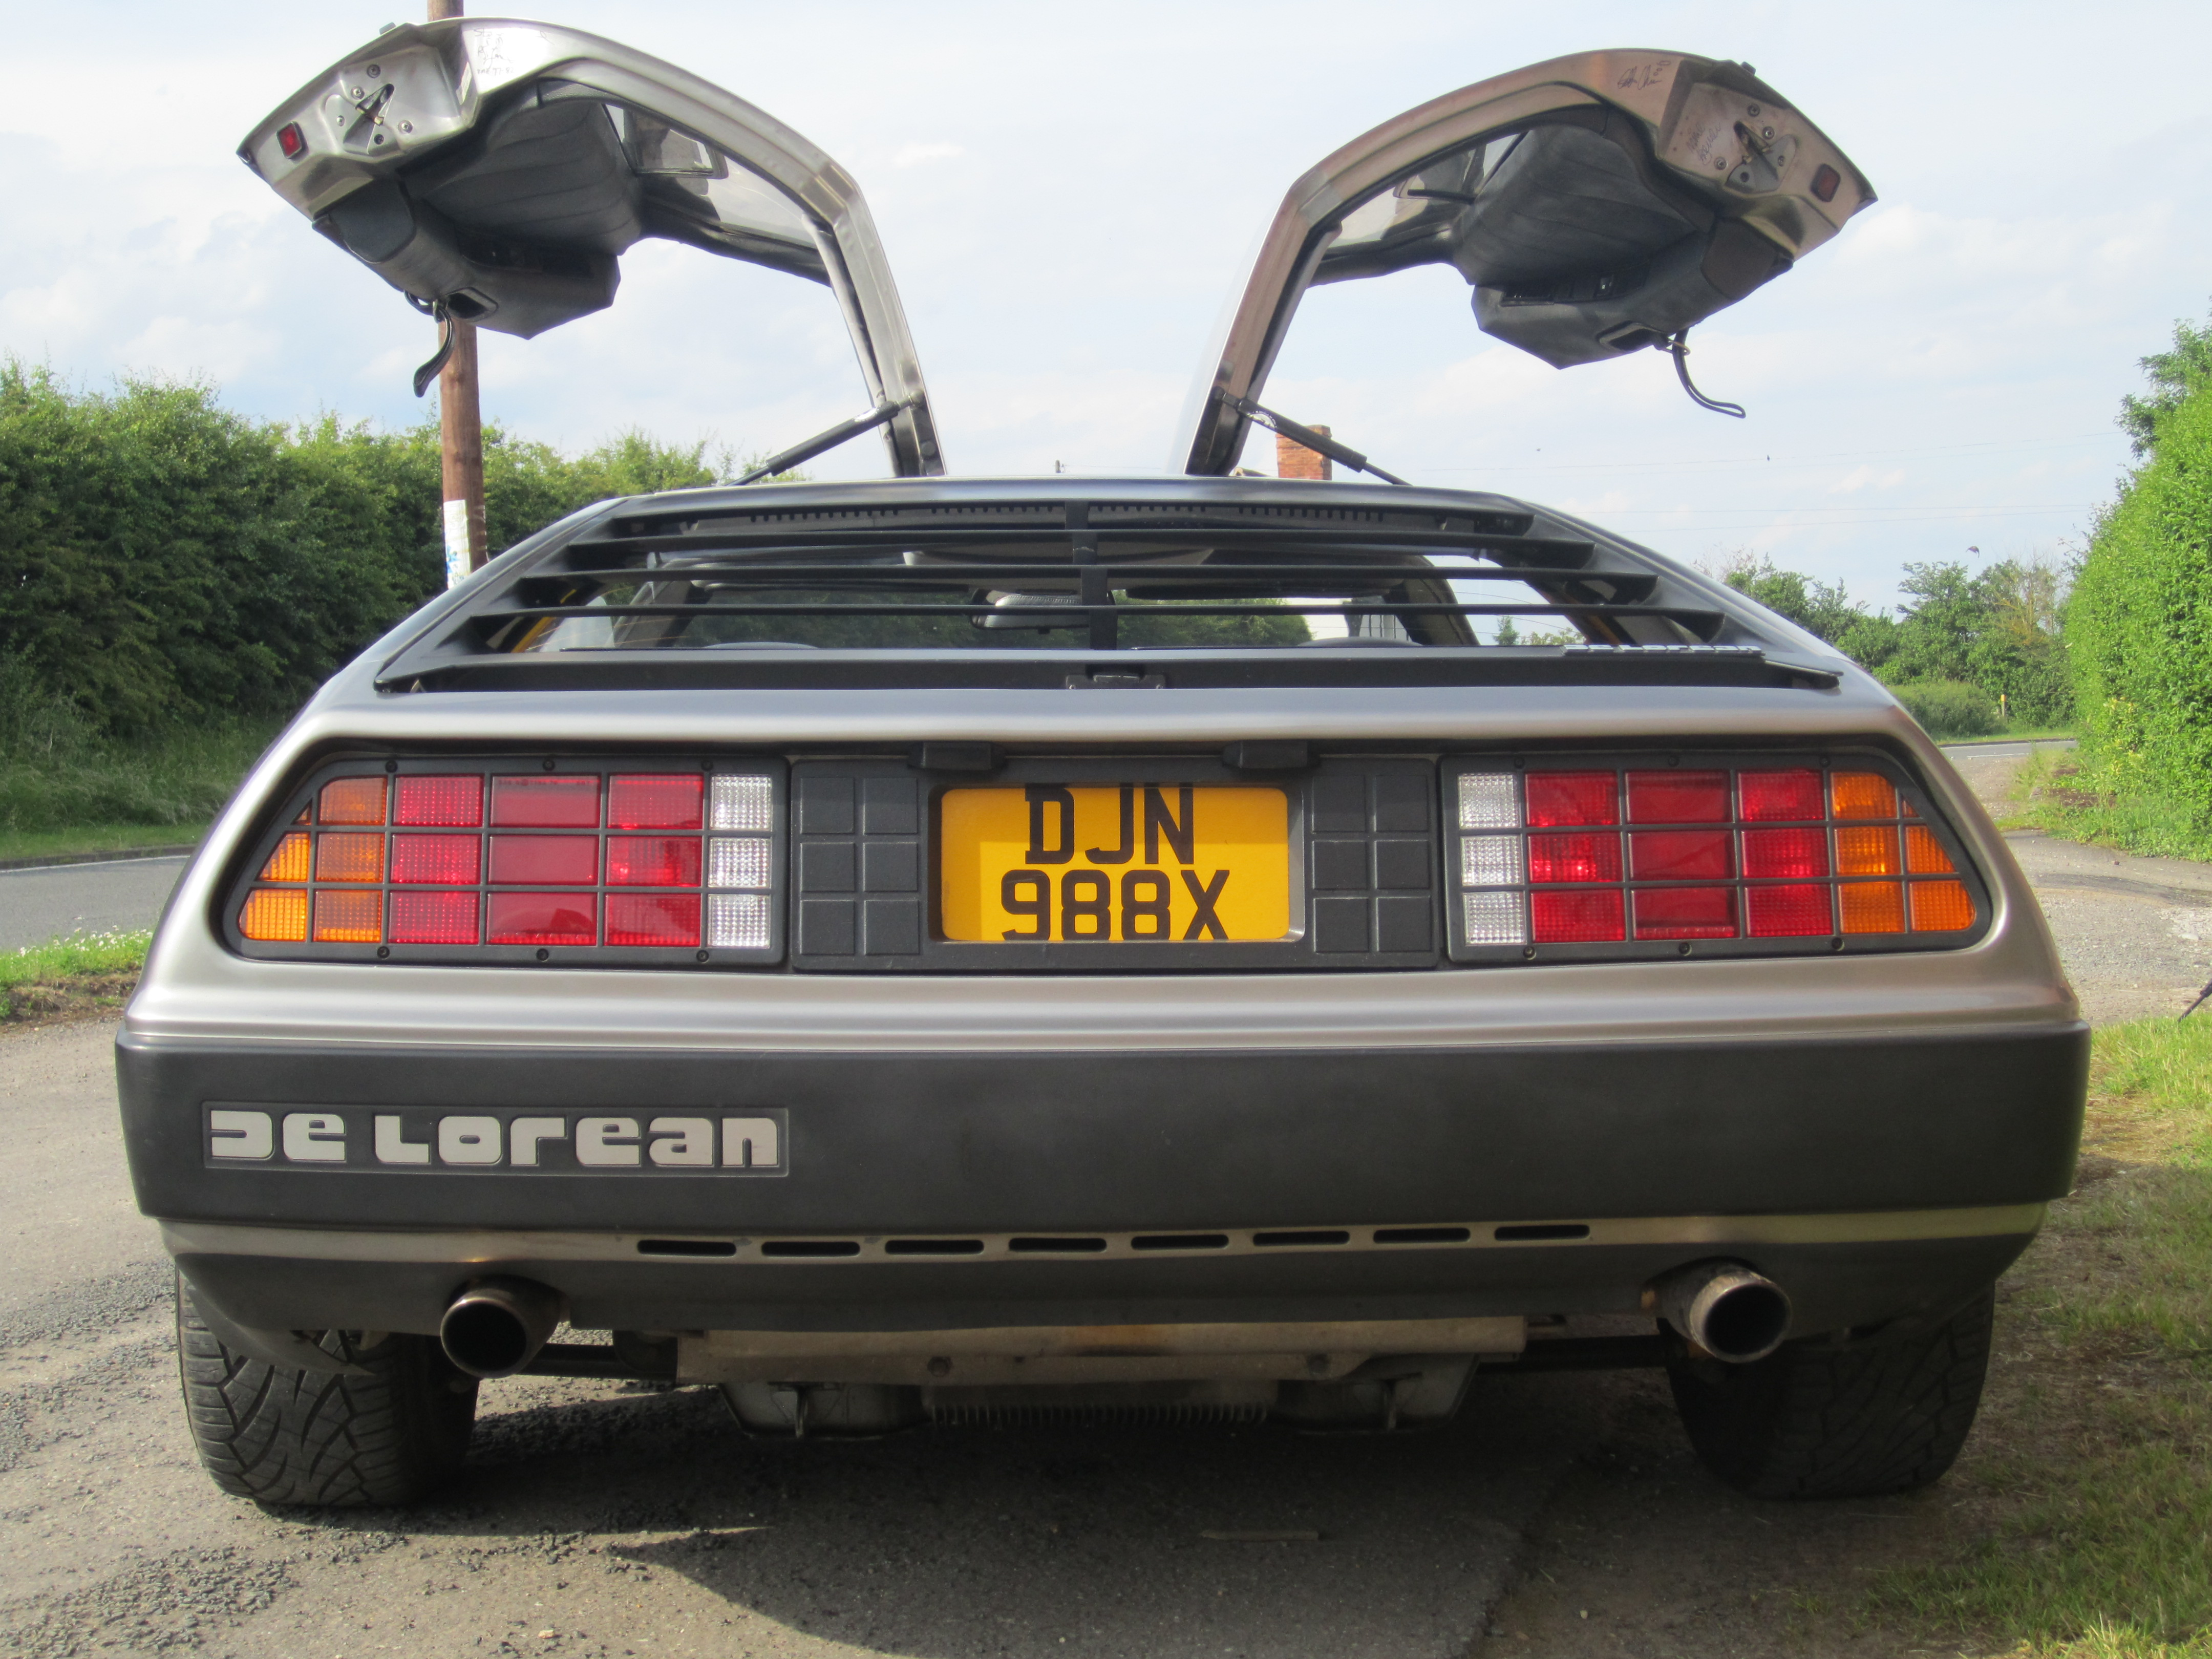 Delorean's Distinctive Gullwing Doors